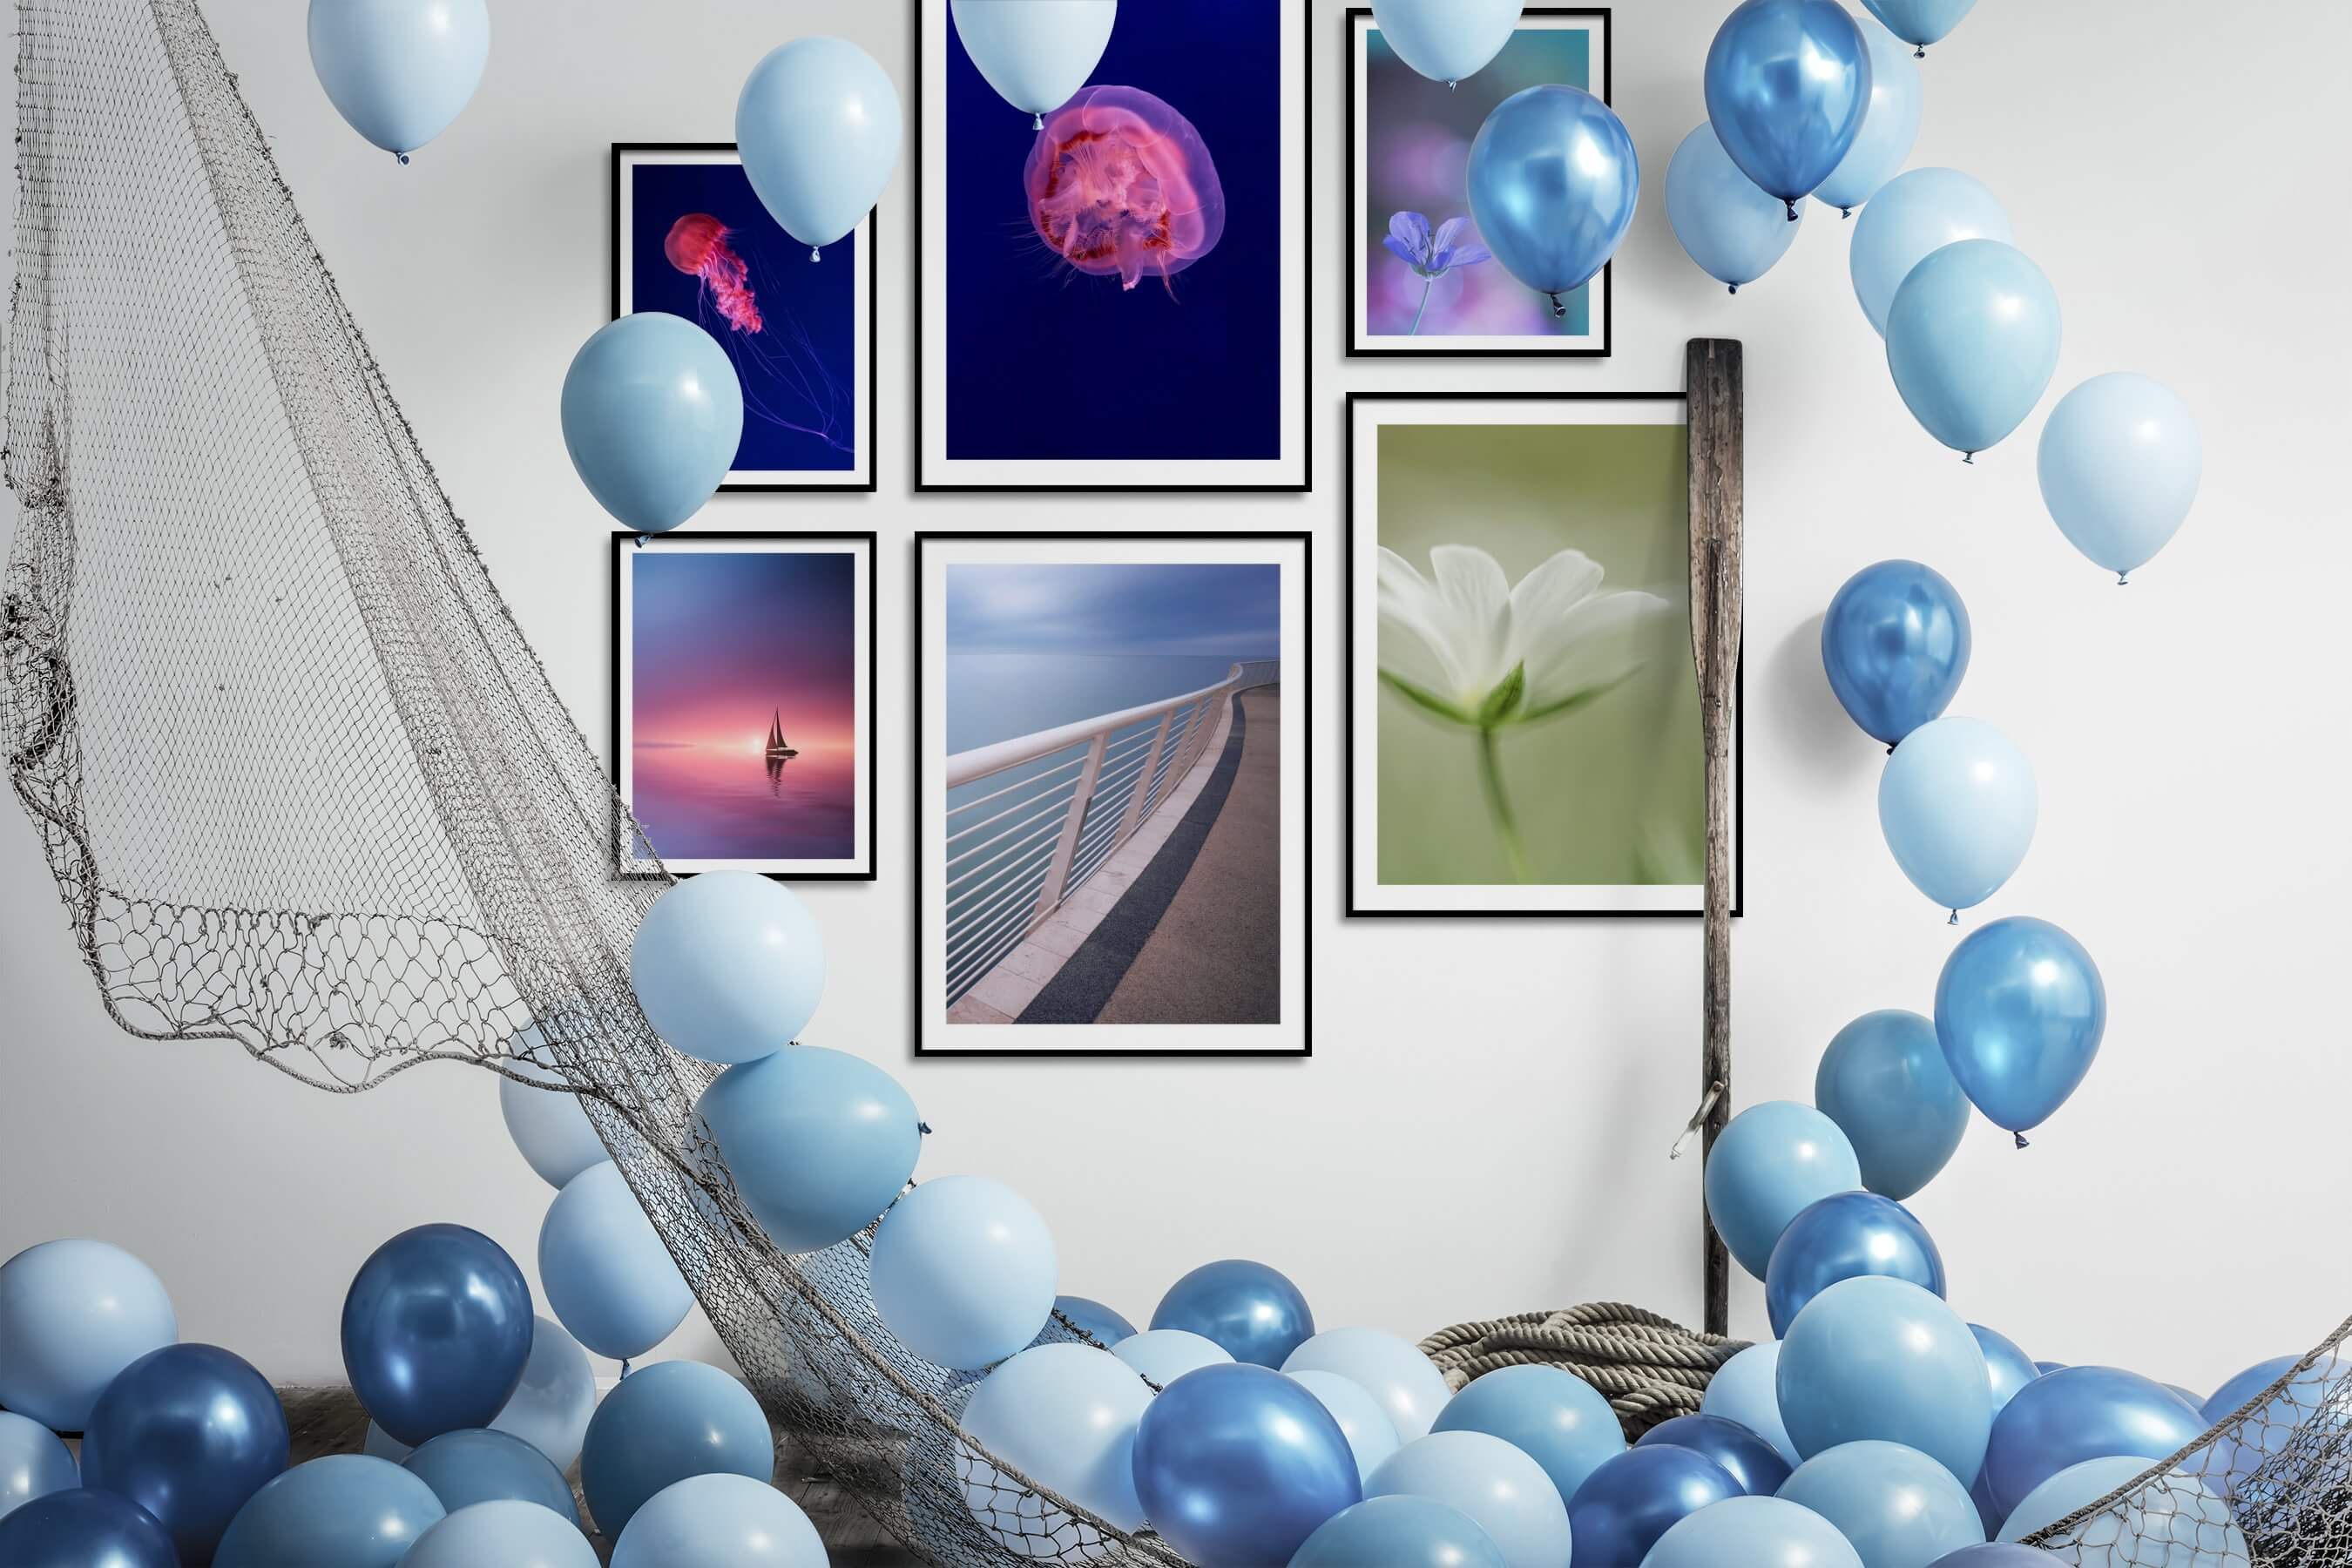 Gallery wall idea with six framed pictures arranged on a wall depicting For the Minimalist, Animals, Beach & Water, Mindfulness, For the Moderate, and Flowers & Plants